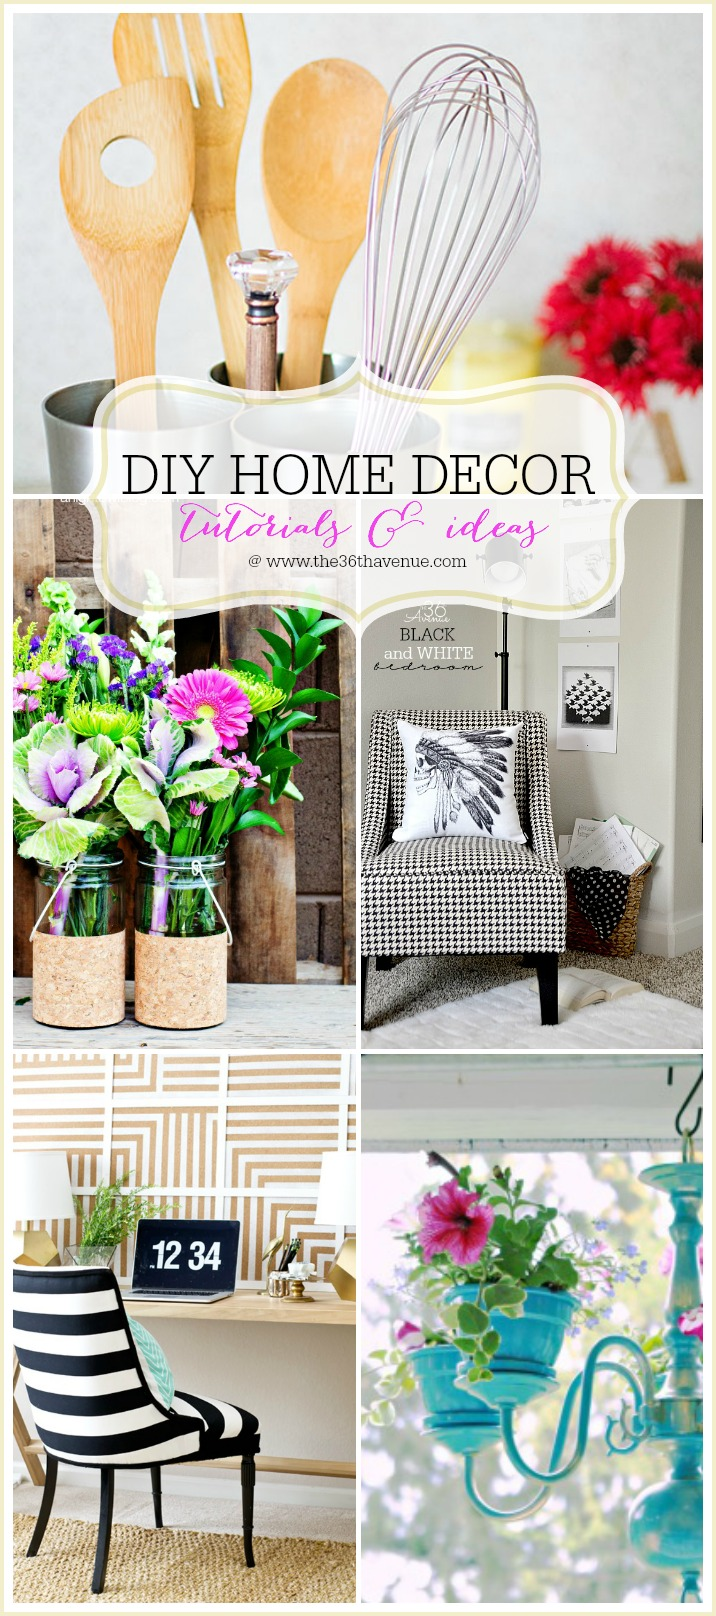 The 36th avenue home decor diy projects the 36th avenue Diy home interior design ideas